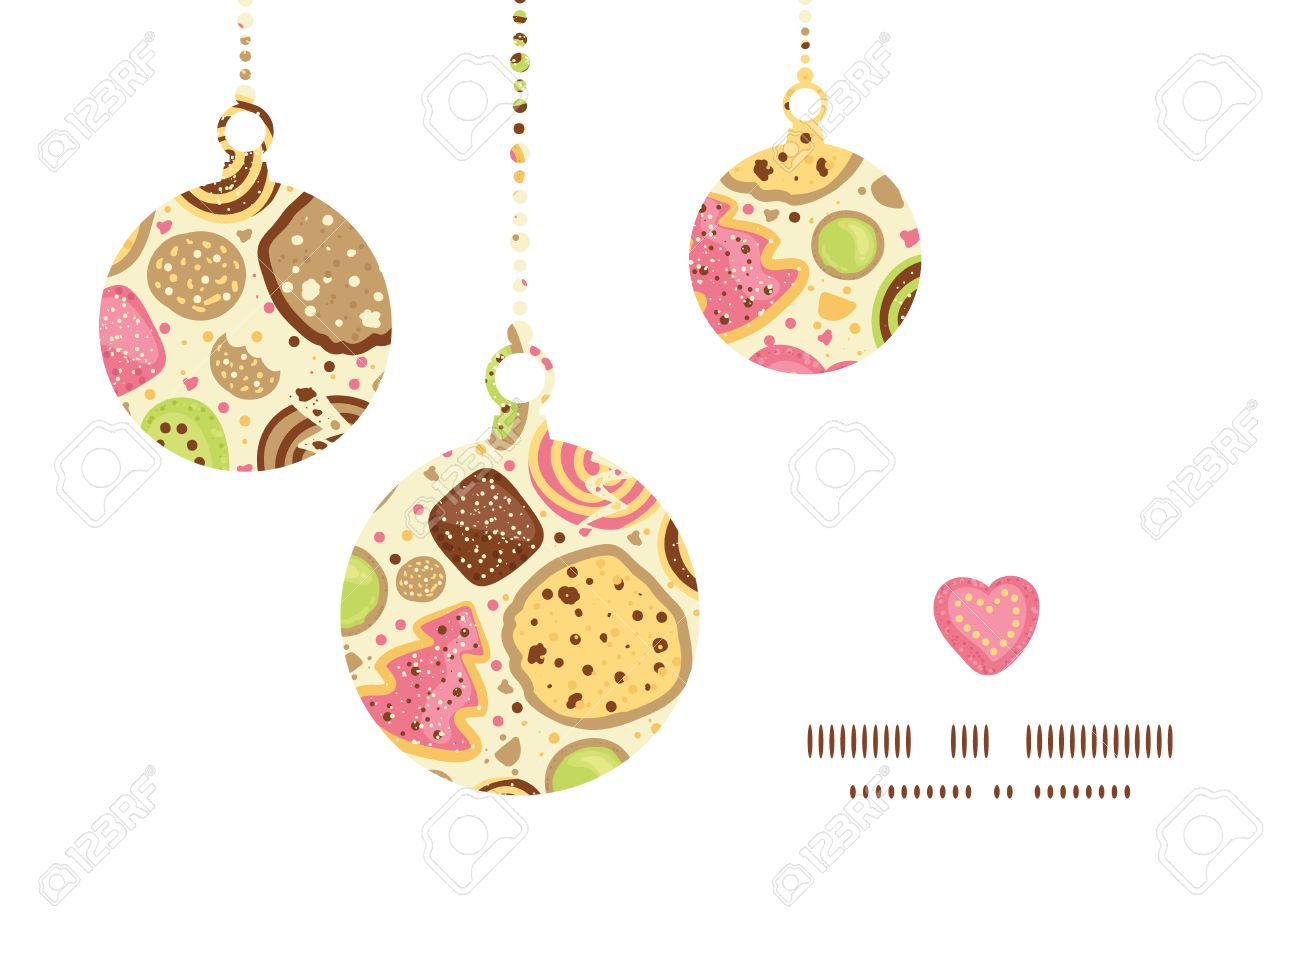 Christmas ornament frame - Vector Vector Colorful Cookies Christmas Ornaments Silhouettes Pattern Frame Card Template